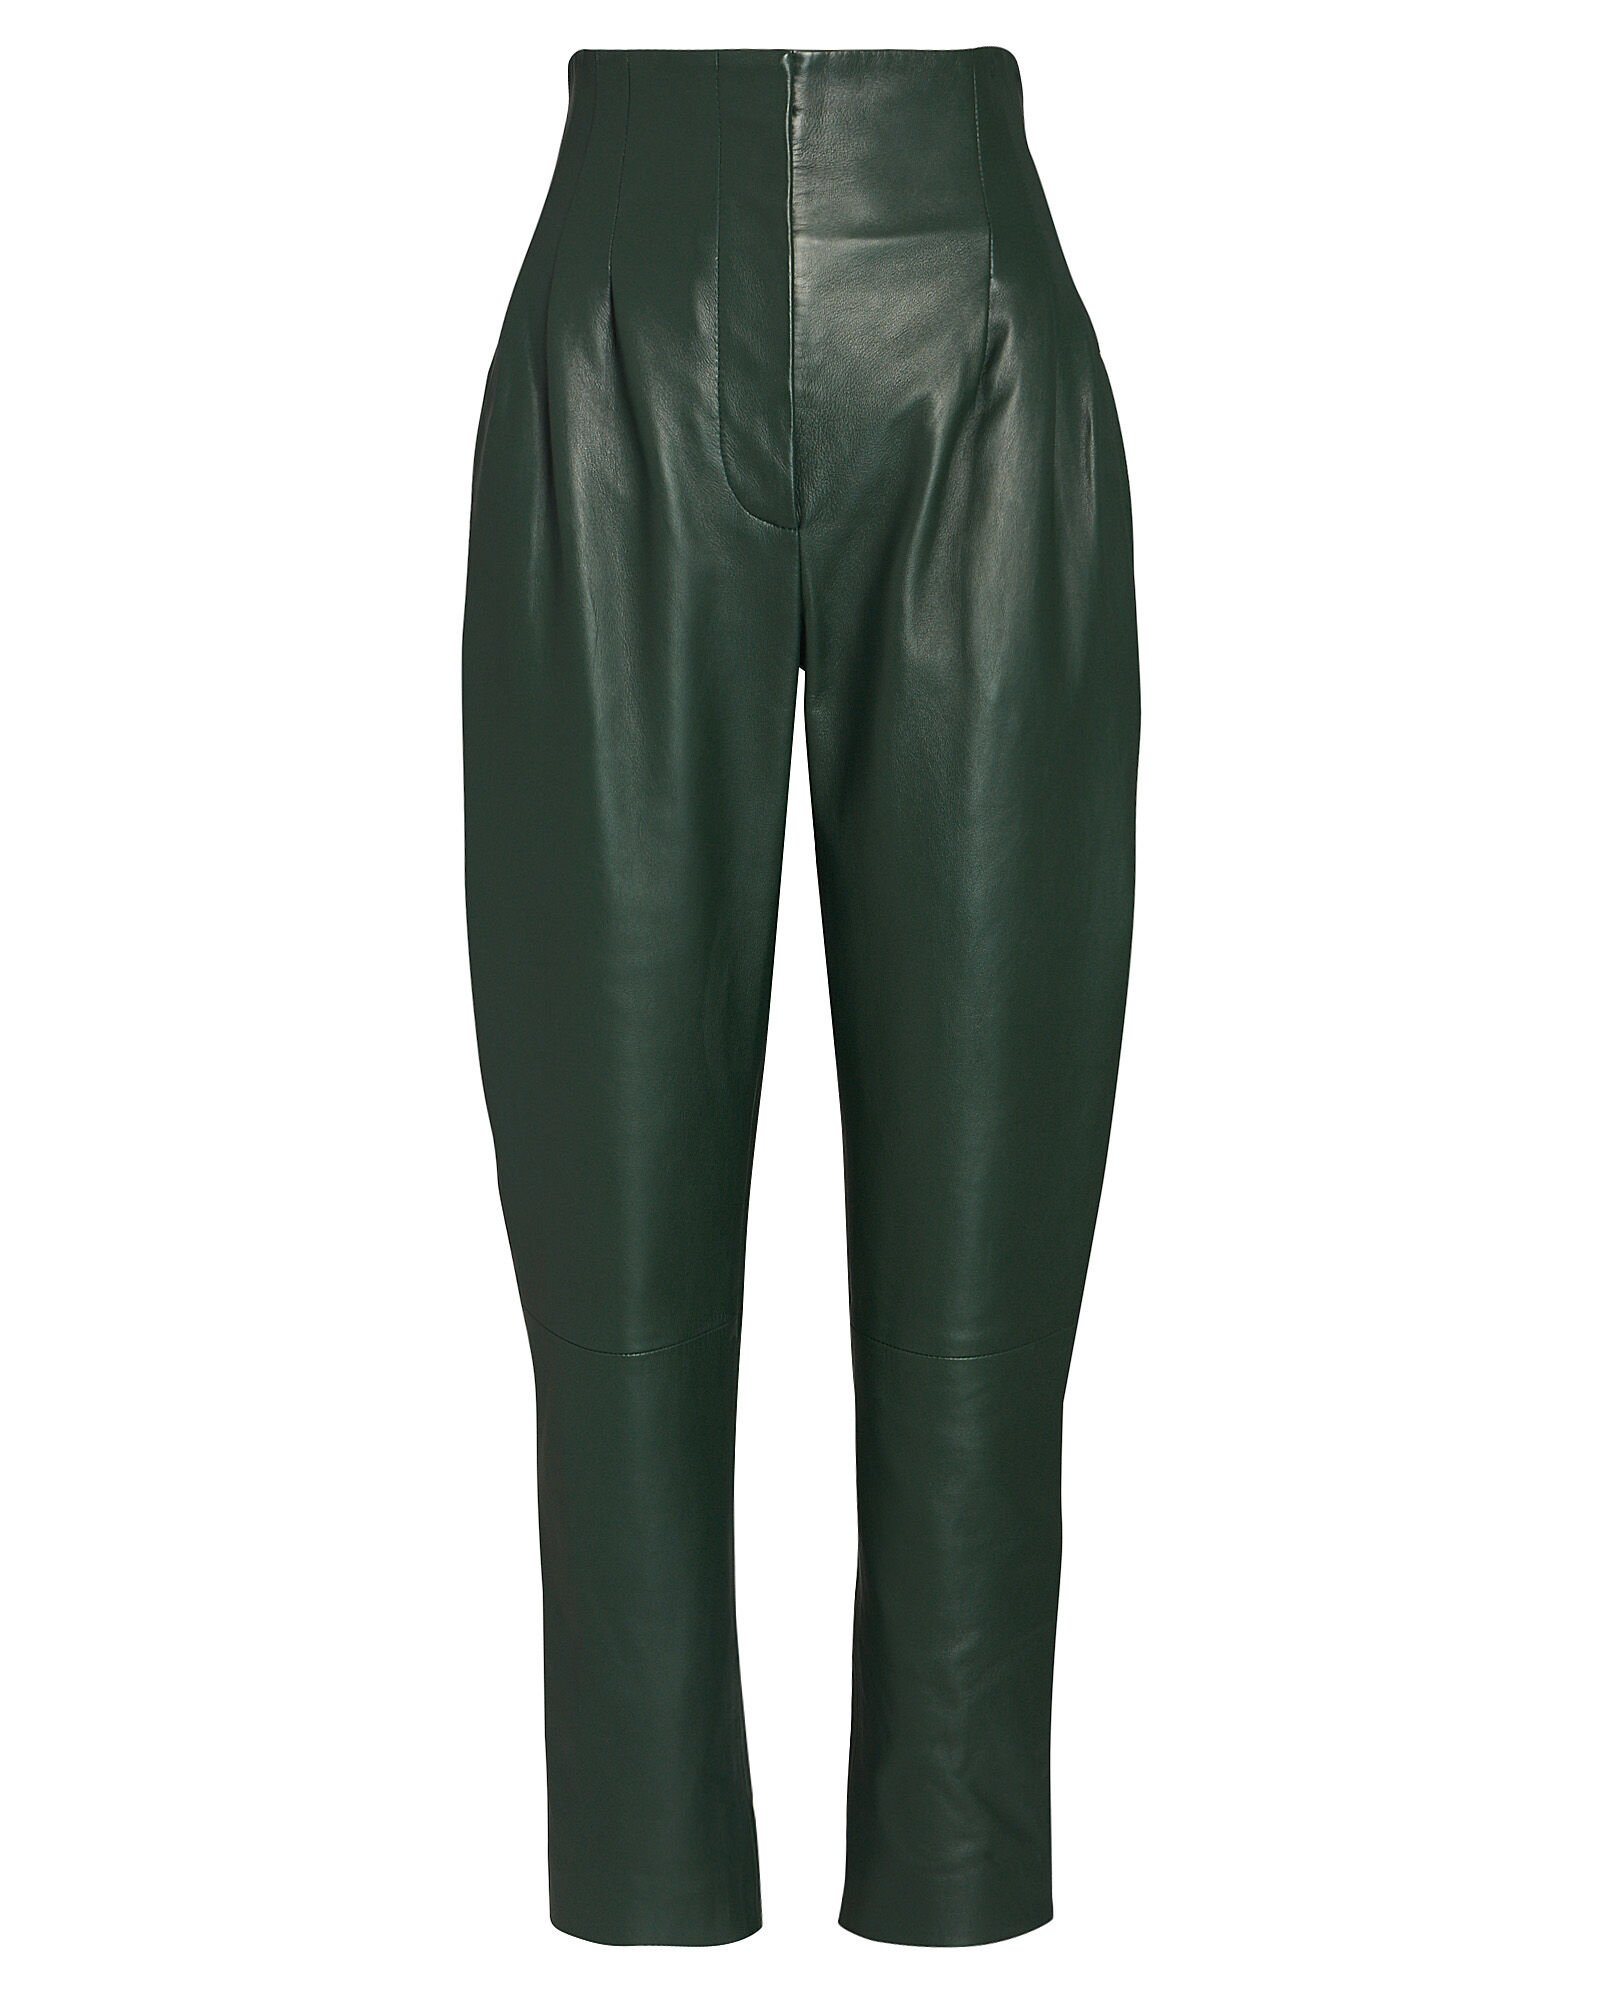 Tapered High-Waist Leather Pants, GREEN, hi-res